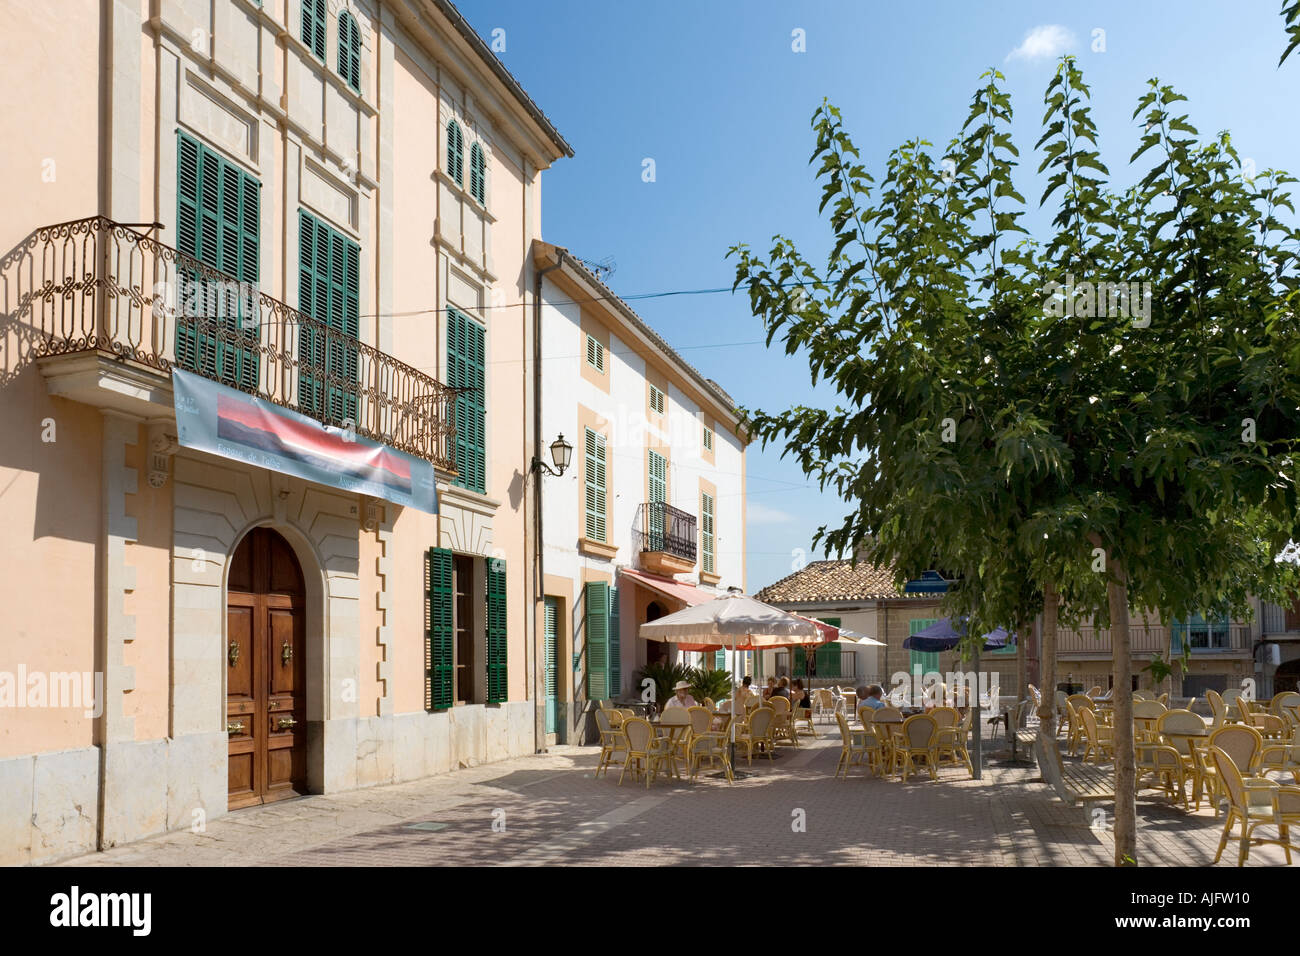 Cafe in the Main Square (Placa Major), Campanet, North of the island, Mallorca, Spain - Stock Image